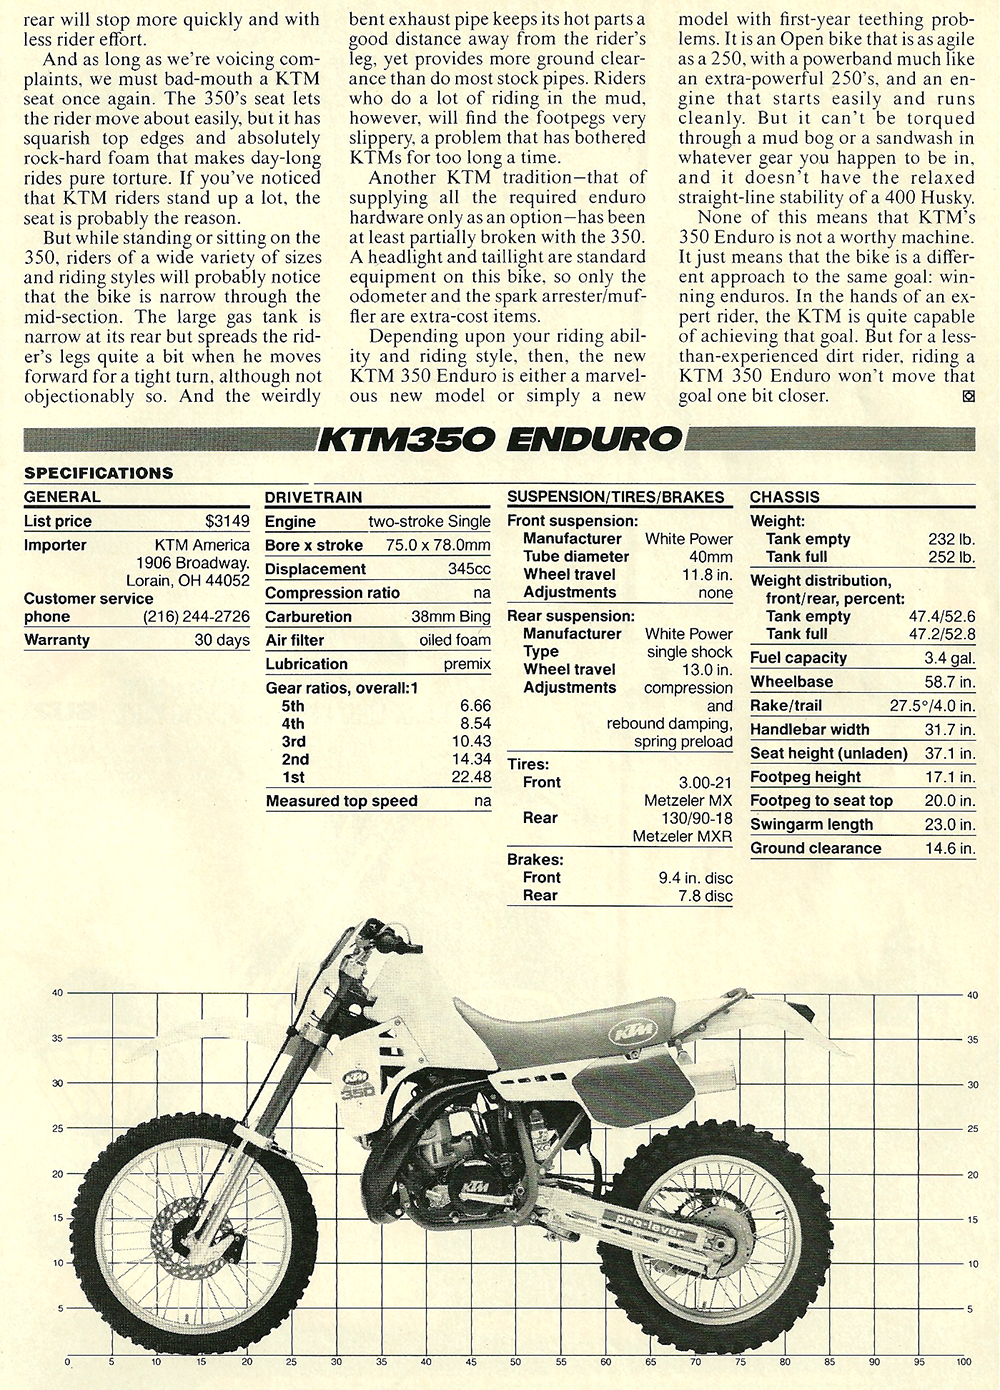 1986 KTM 350 enduro road test 04.jpg